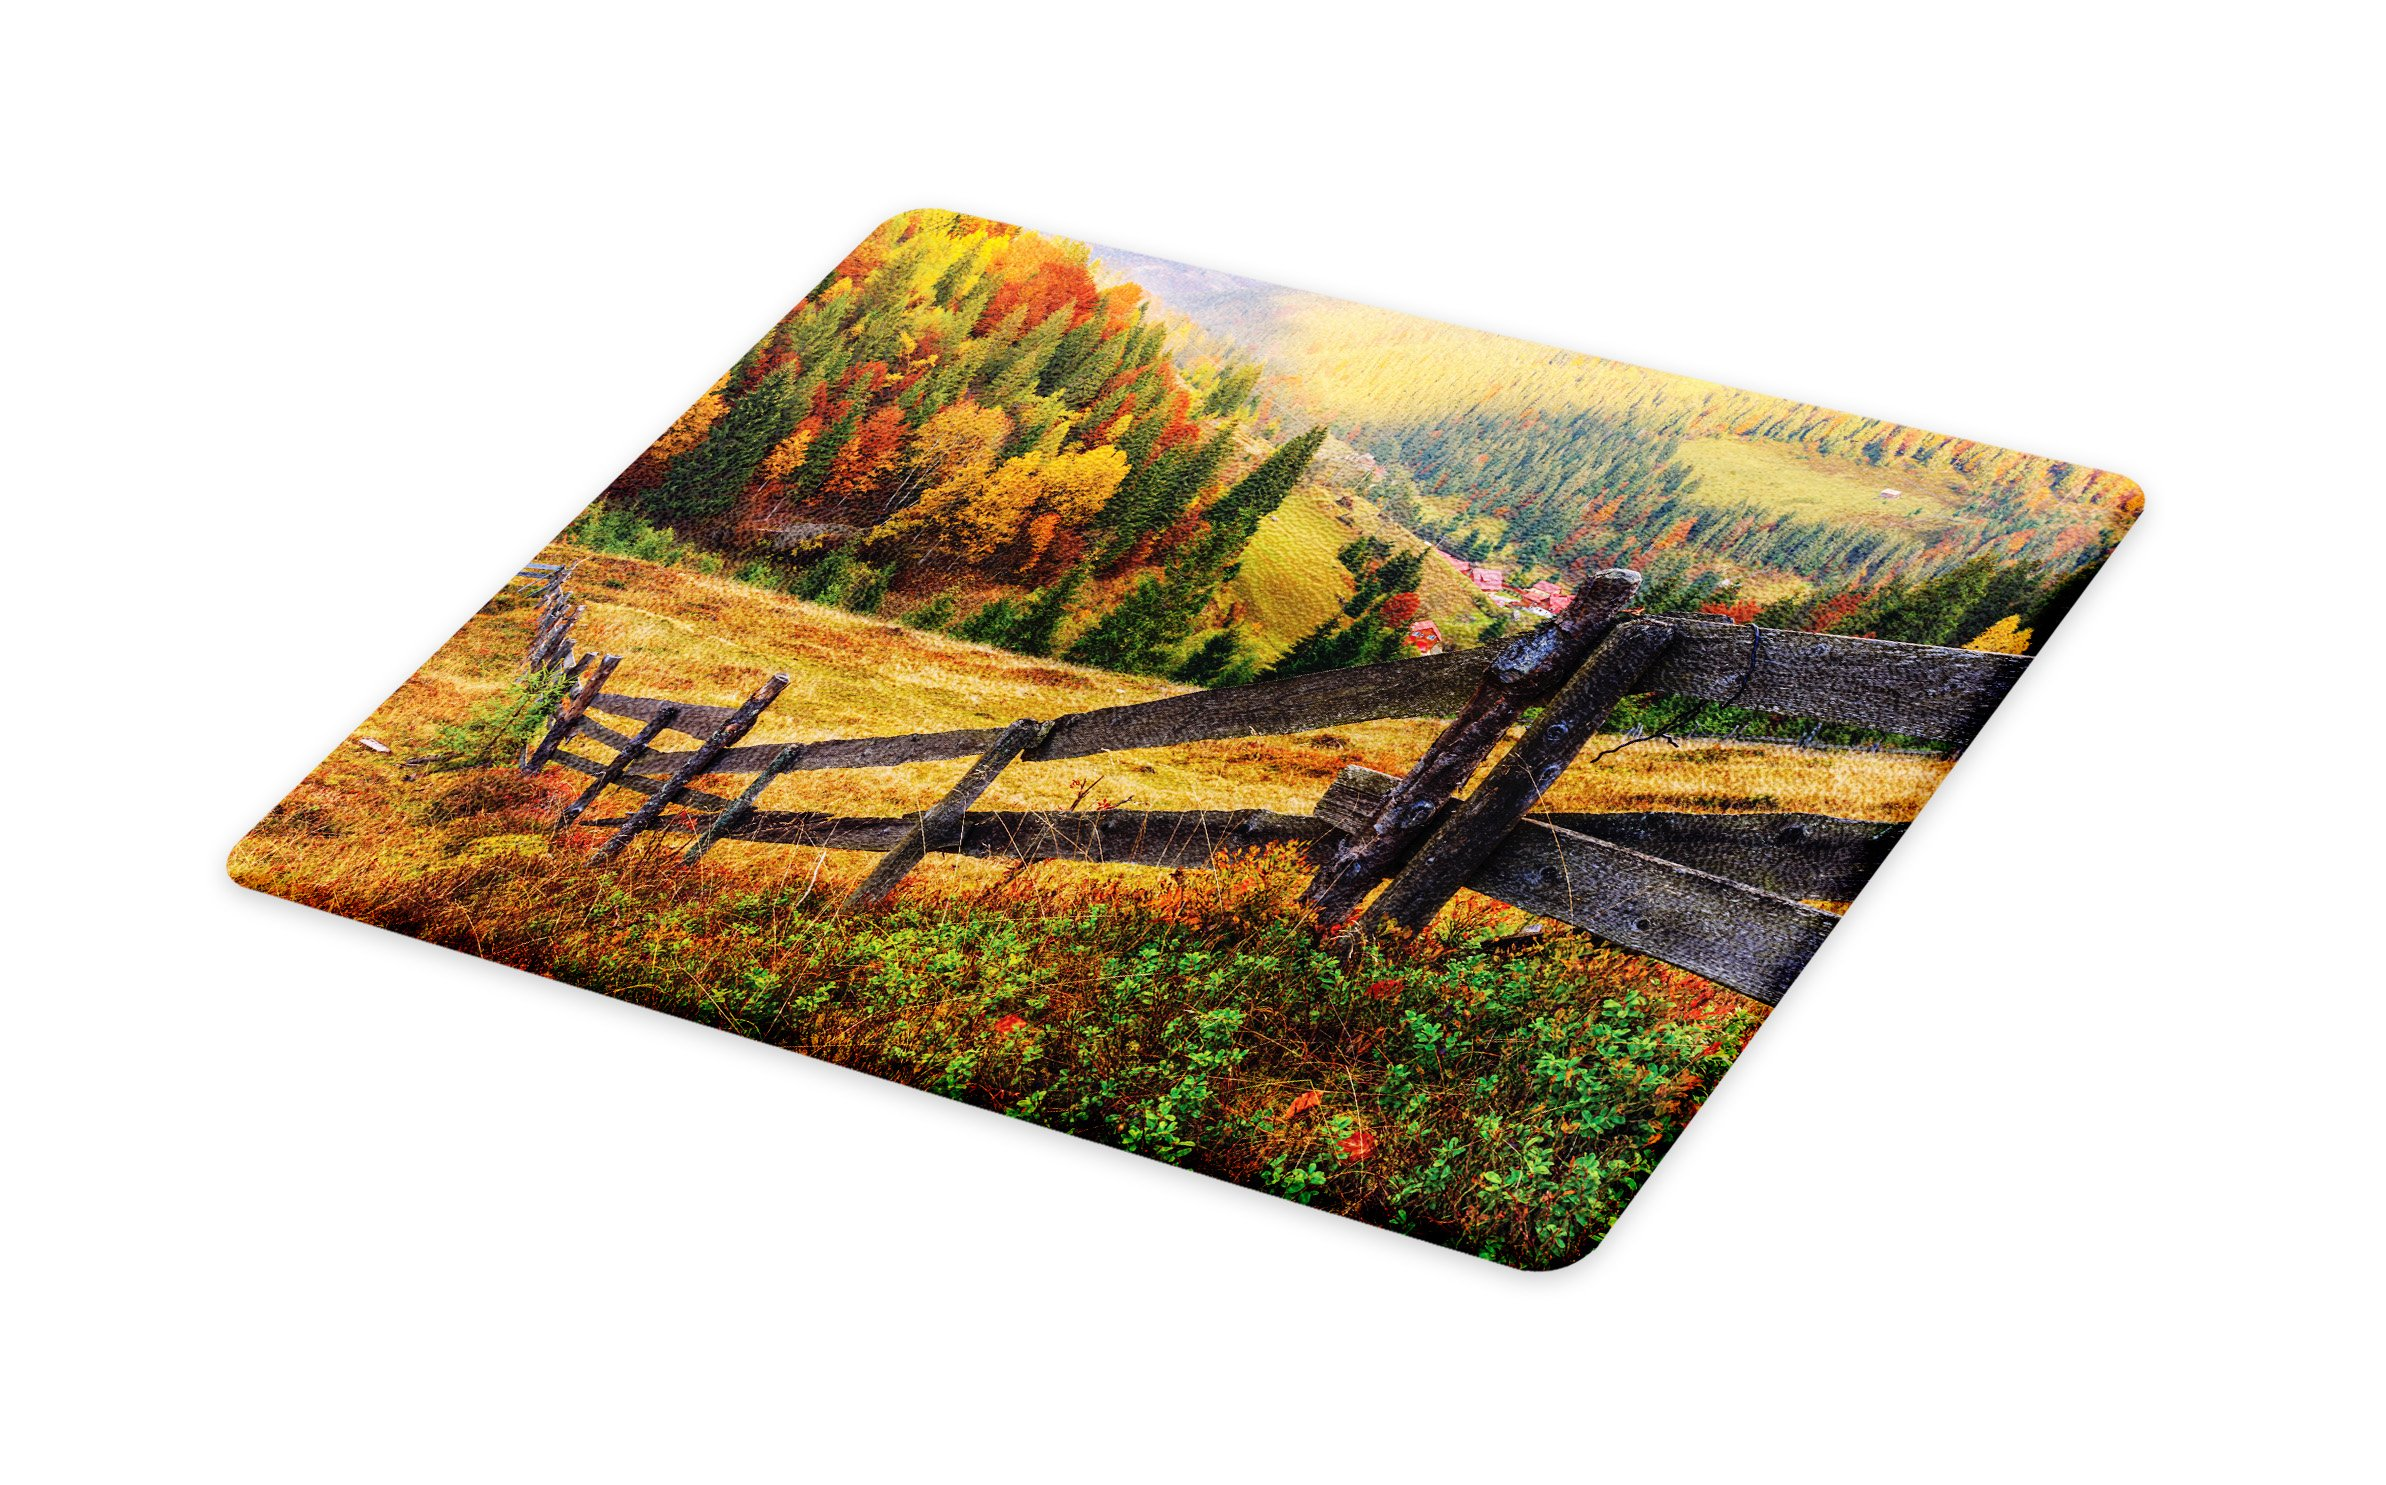 Lunarable Landscape Cutting Board, Colorful Autumn Scene with Old Wood Fence on Meadow Countryside Fall Image, Decorative Tempered Glass Cutting and Serving Board, Large Size, Green Yellow